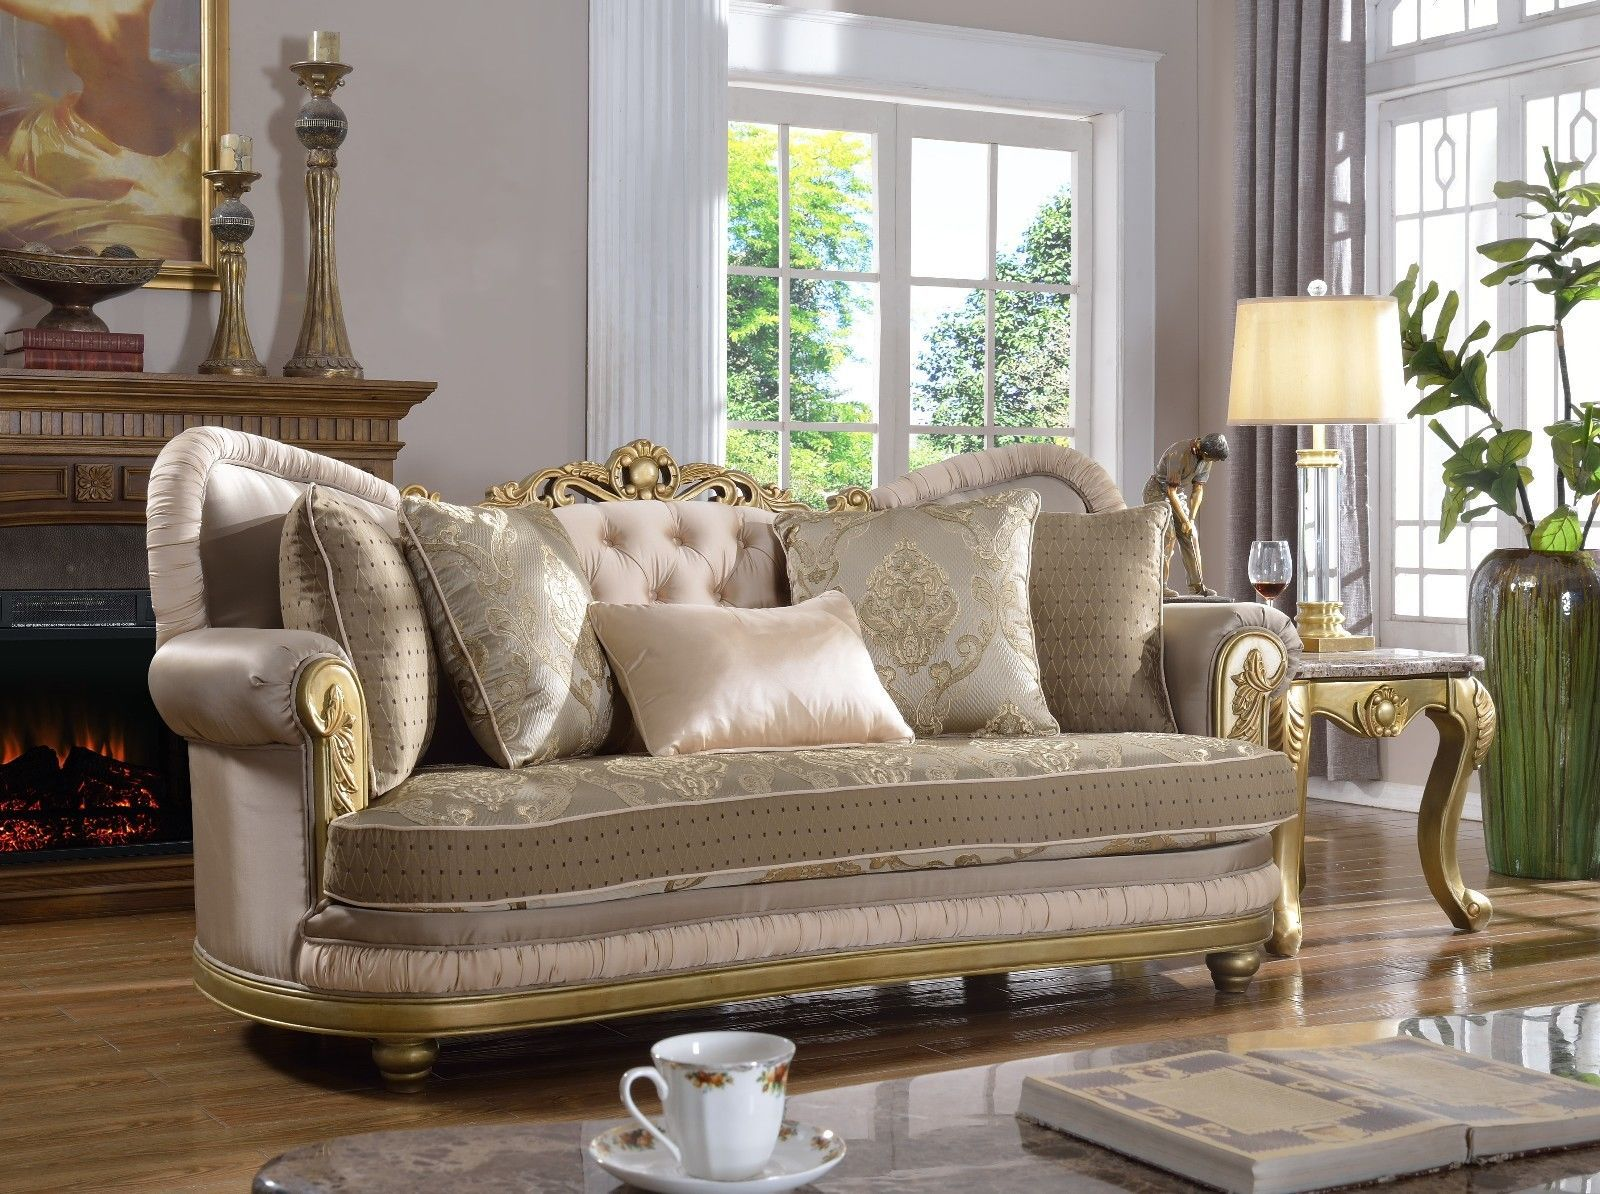 Meridian 658 Light Toned Fabric Living Room Sofa Tufted Rich Gold Traditional